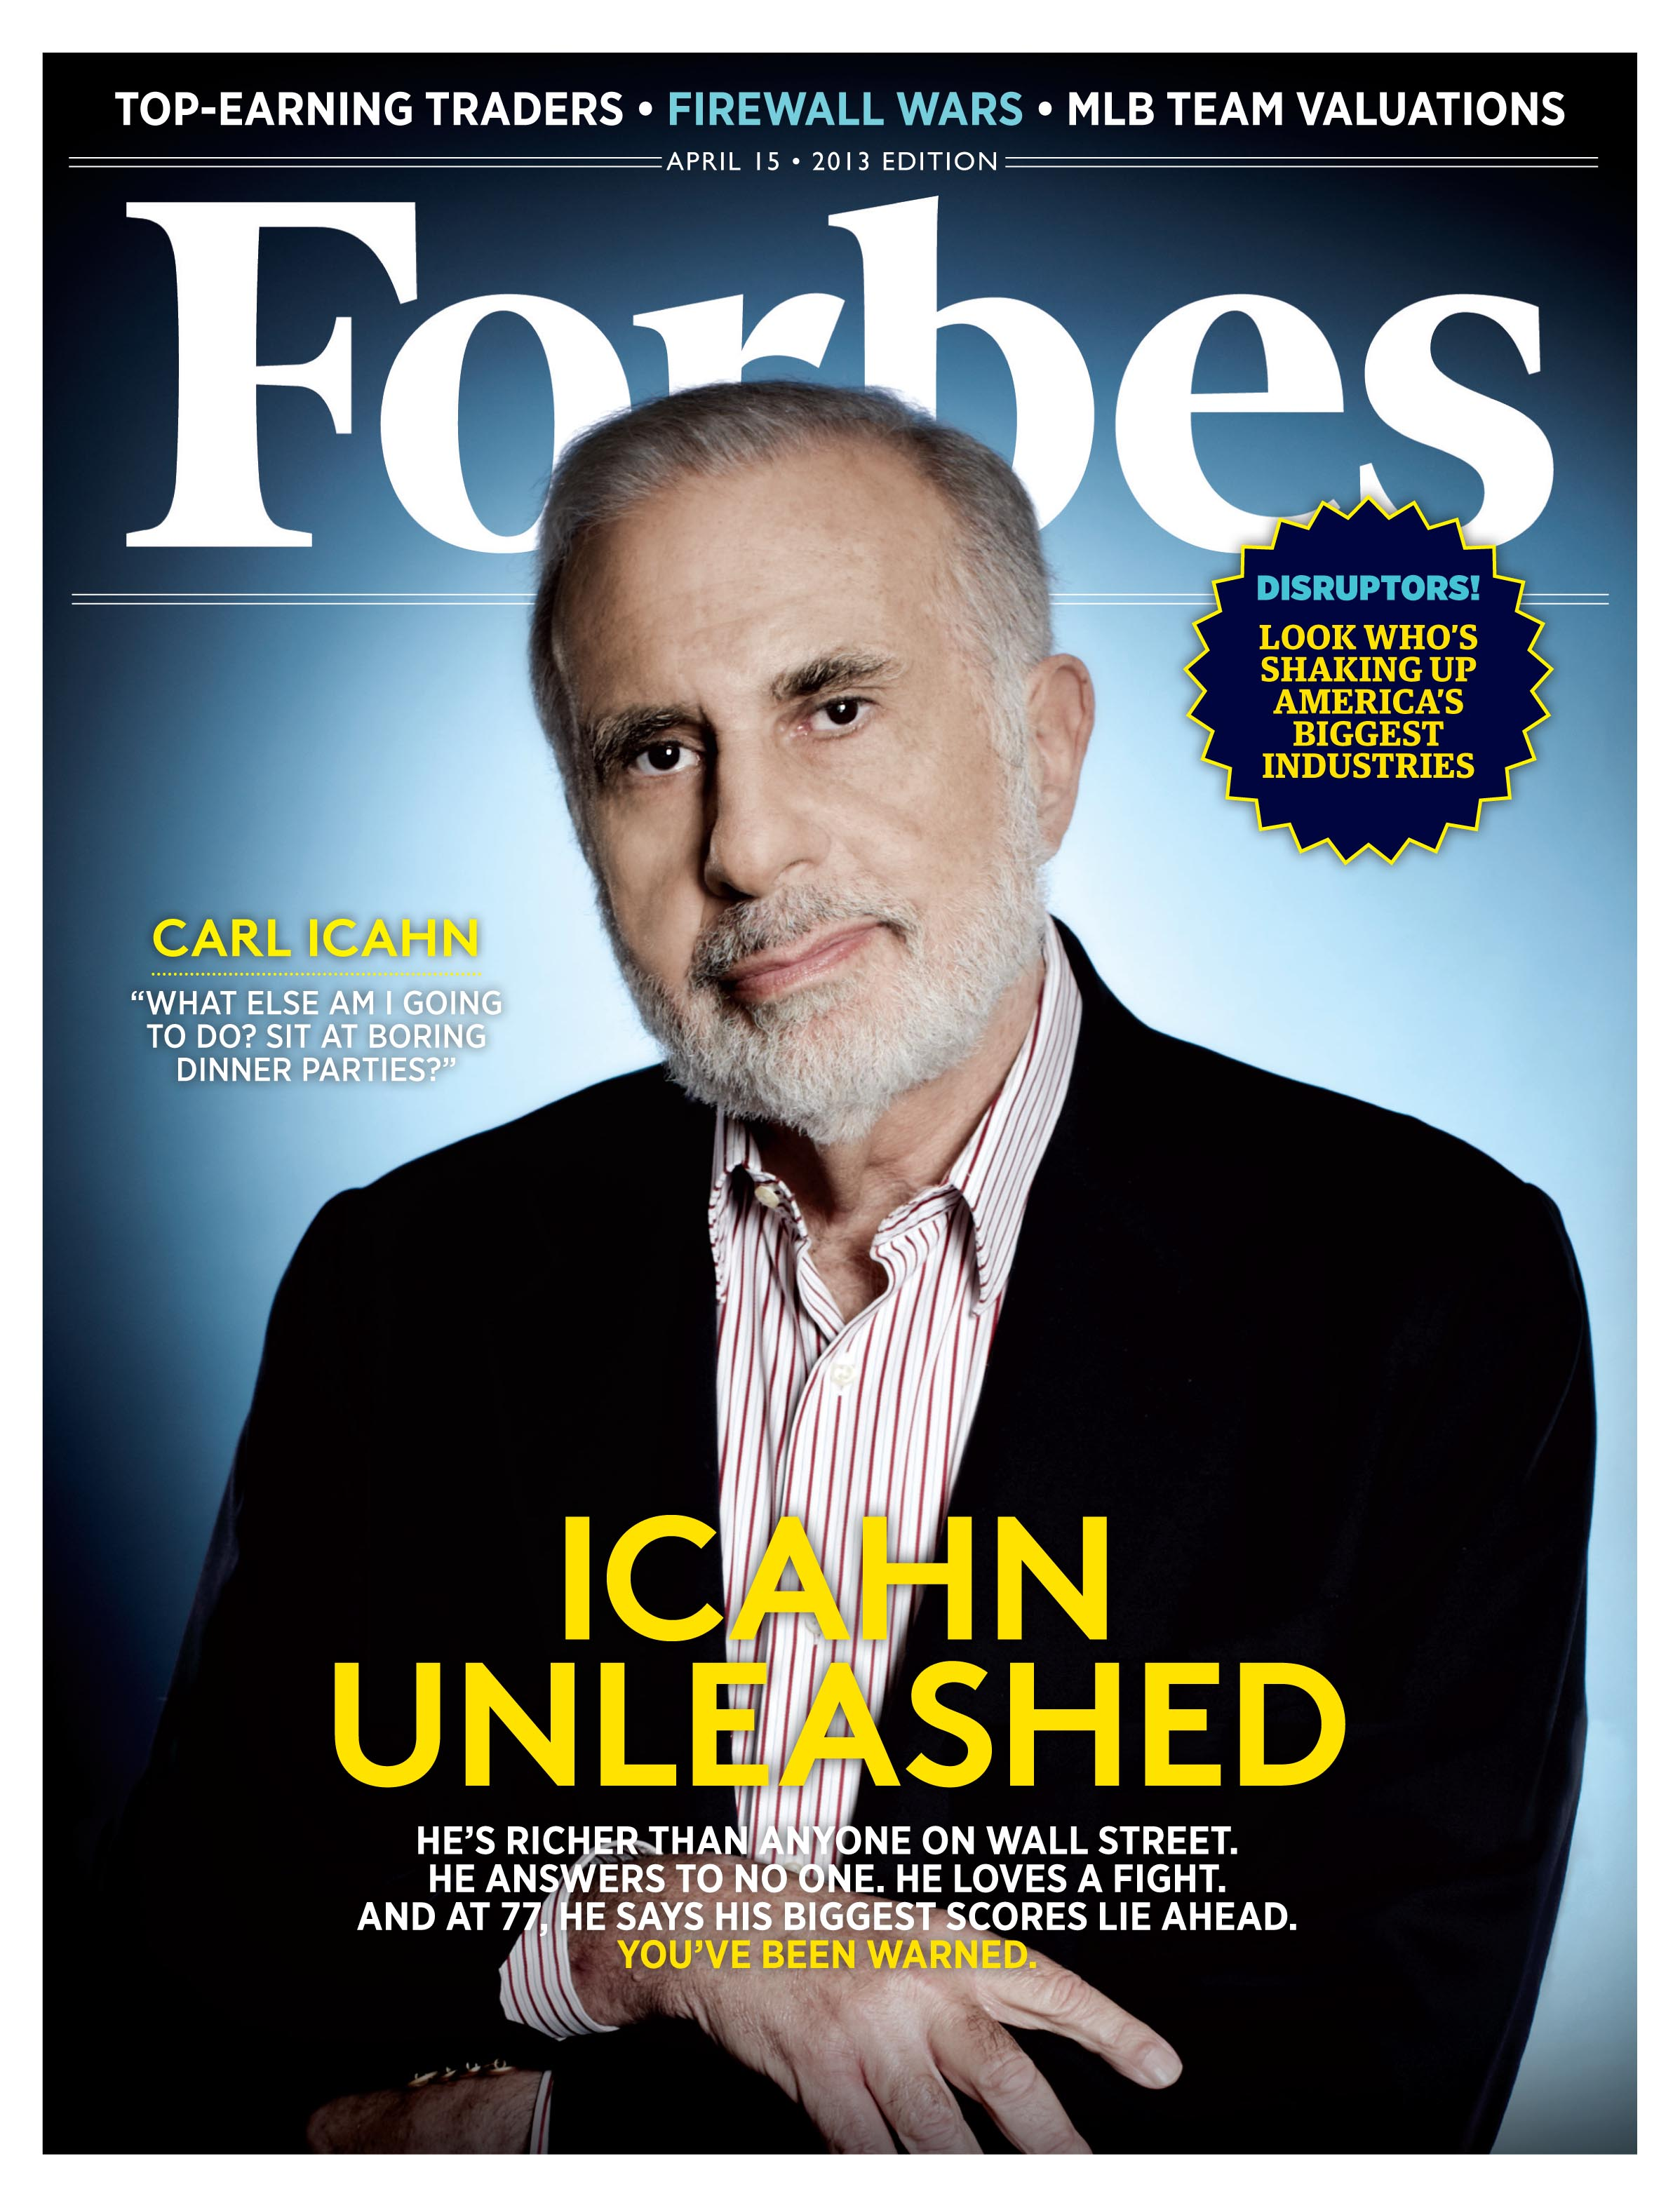 Carl Icahn (April 2013 Forbes cover)